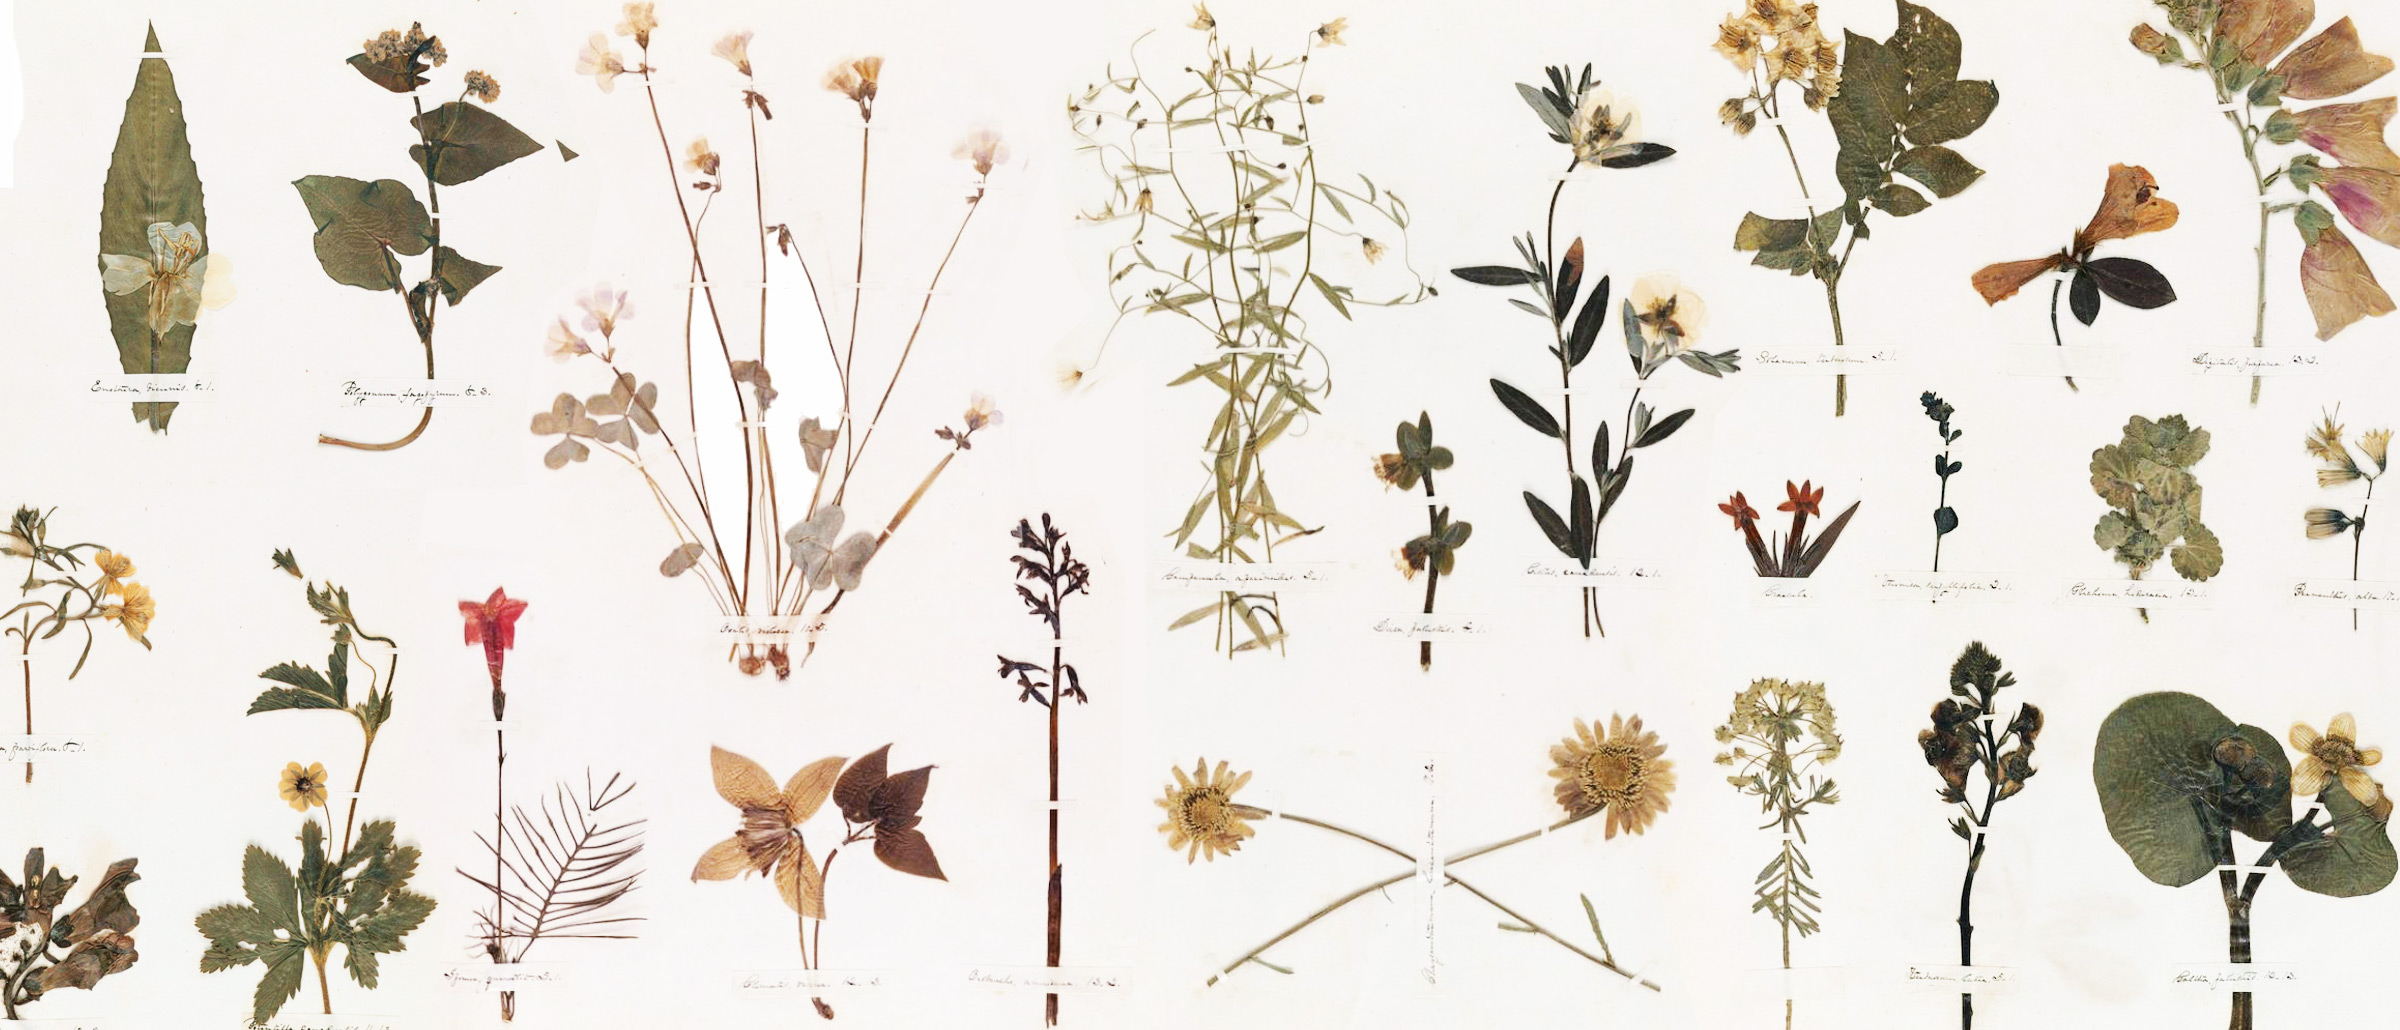 An excerpt from Emily Dickinson's herbarium which is digitised and held at Houghton Library at Harvard University.